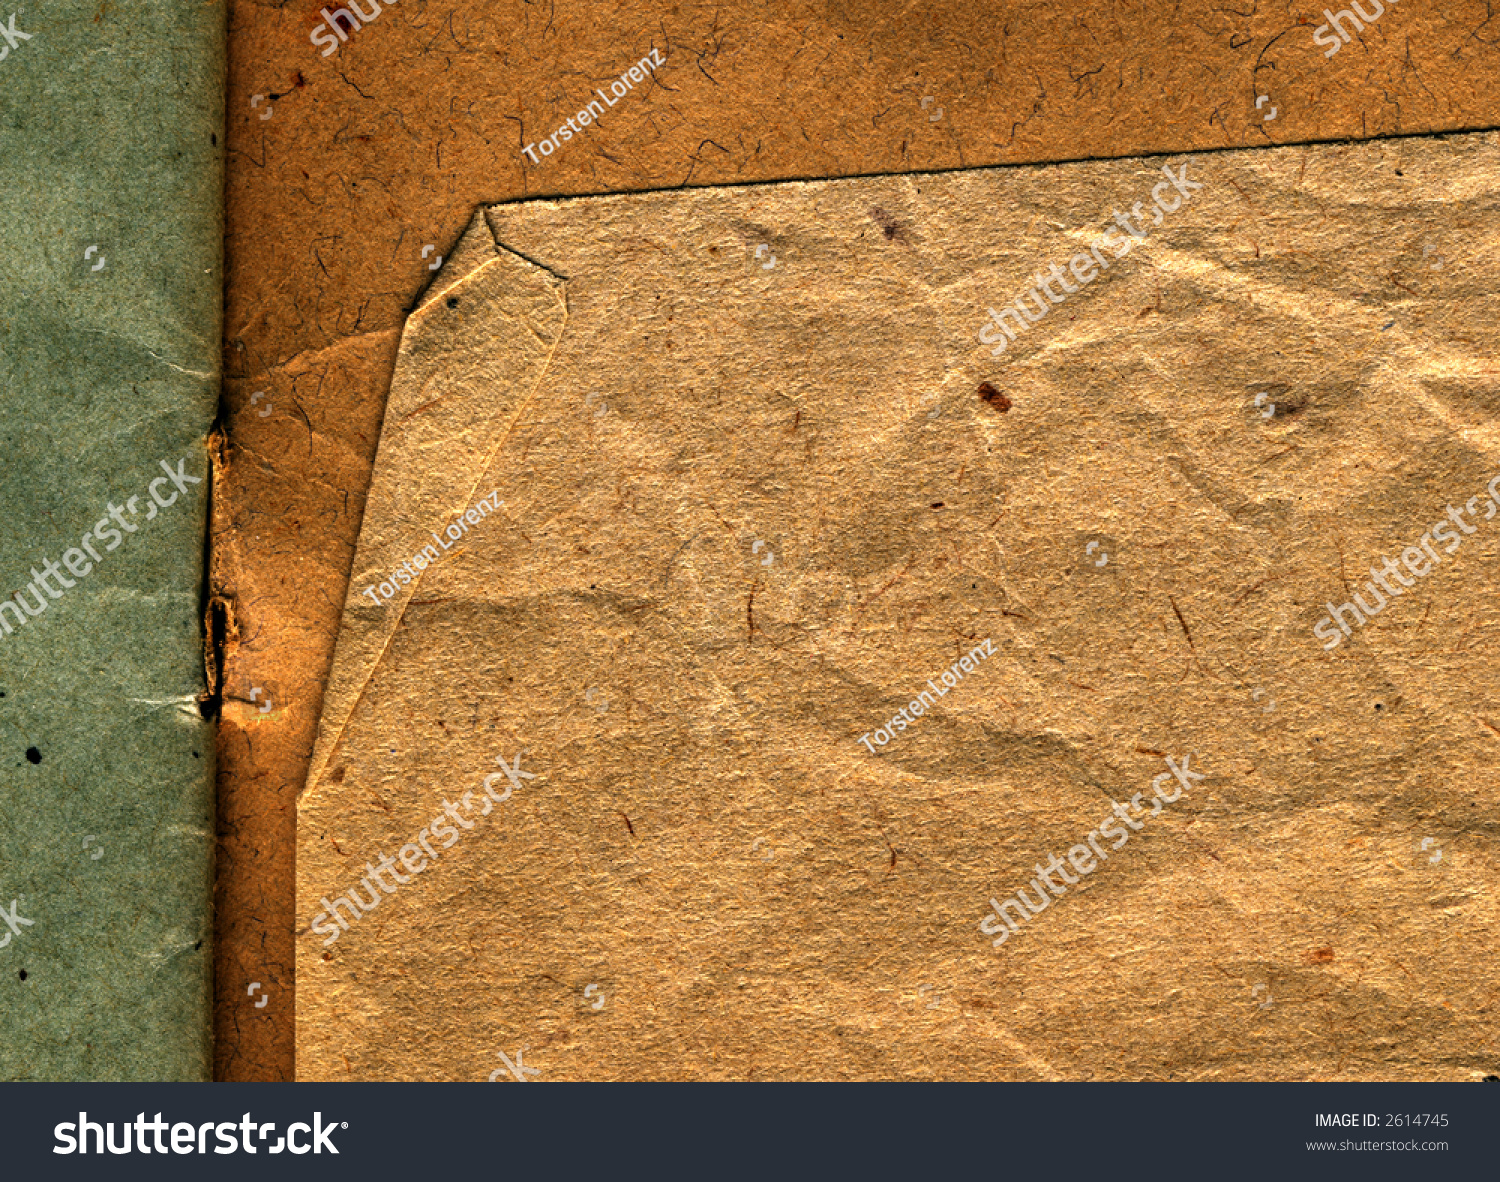 Grunge Book Cover Texture : Grunge antique book cover detail stock photo